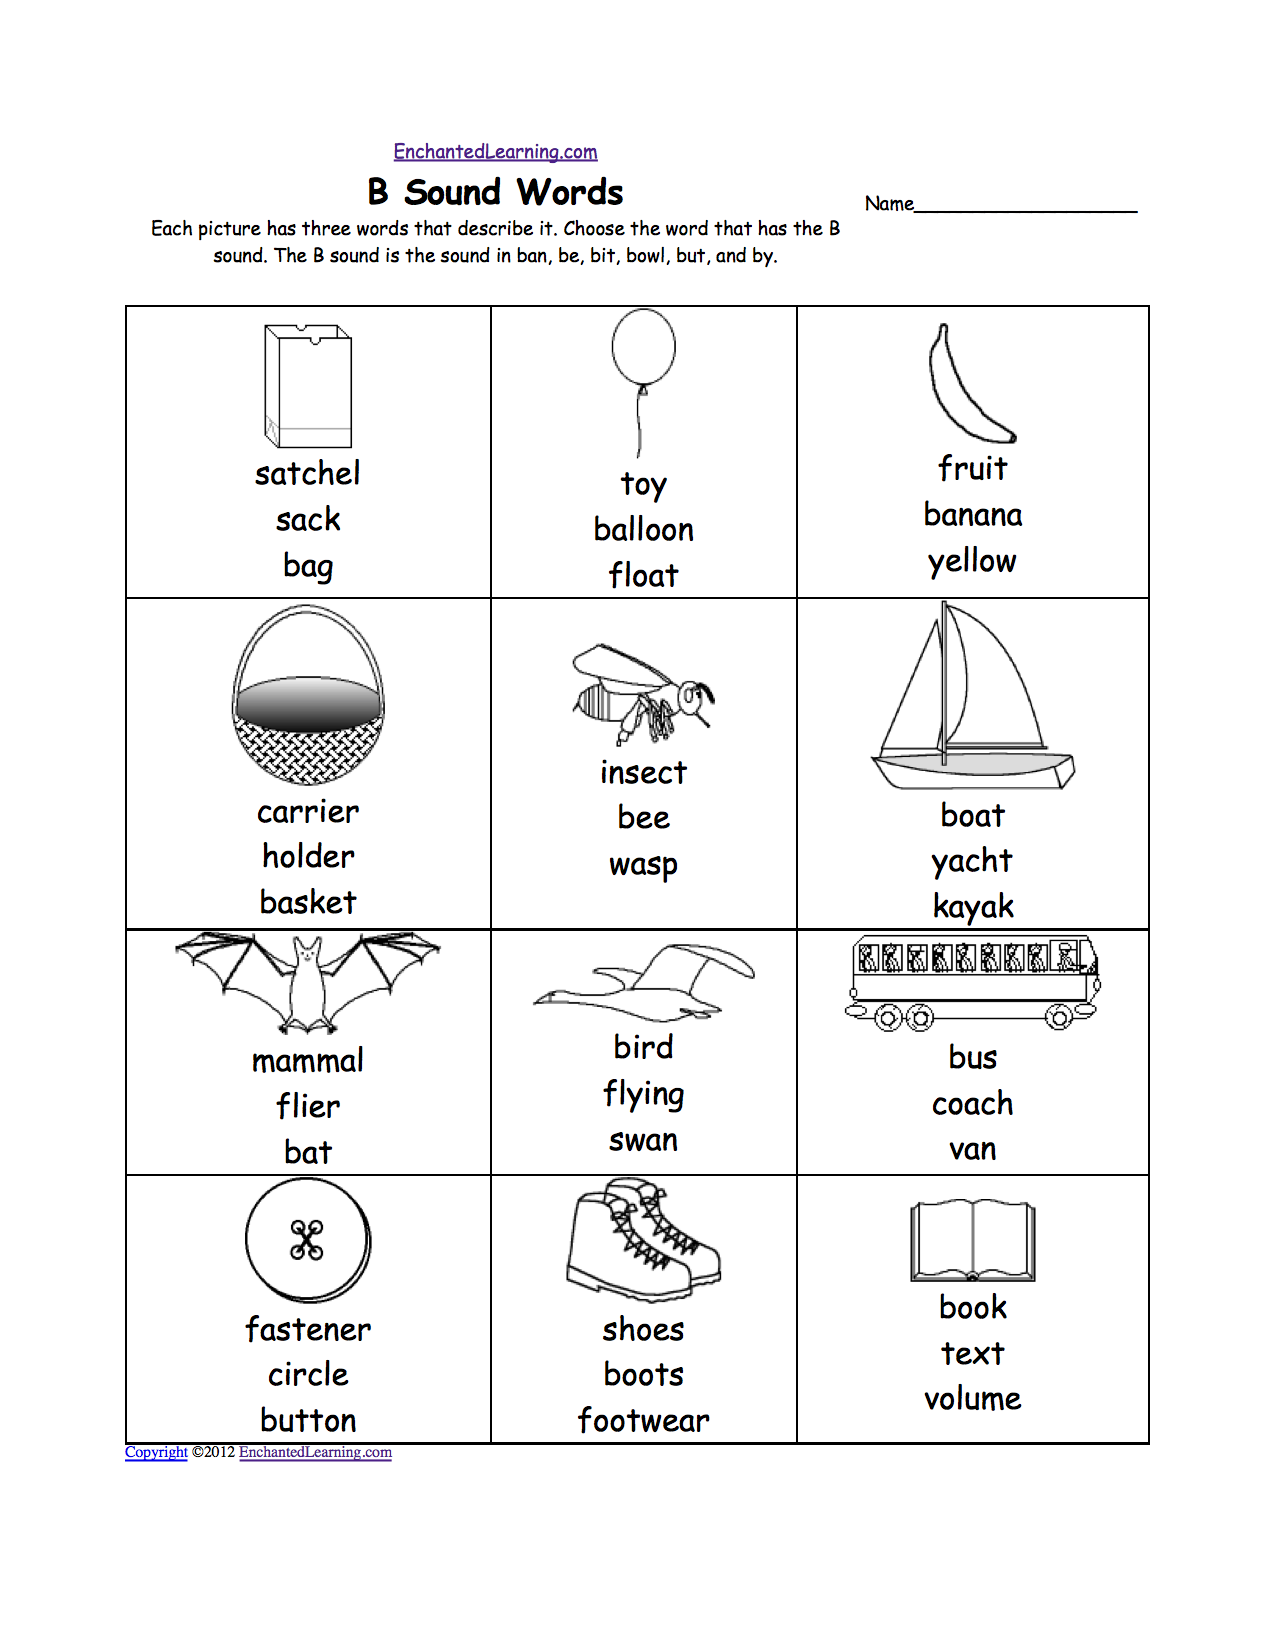 Proatmealus  Inspiring Phonics Worksheets Multiple Choice Worksheets To Print  With Outstanding Quotbquot Sound Phonics Worksheet Multiple Choice Each Picture Has Three Words That Describe It Choose The Word That Has A Quotbquot Sound The Quotbquot Sound Is The Sound  With Agreeable Maths Comprehension Worksheets Also Math Worksheets Decimals To Fractions In Addition Eyewitness Weather Video Worksheet And Action Words Worksheets For Grade  As Well As Letter S Worksheets Kindergarten Additionally Area And Perimeter Of A Circle Worksheets From Enchantedlearningcom With Proatmealus  Outstanding Phonics Worksheets Multiple Choice Worksheets To Print  With Agreeable Quotbquot Sound Phonics Worksheet Multiple Choice Each Picture Has Three Words That Describe It Choose The Word That Has A Quotbquot Sound The Quotbquot Sound Is The Sound  And Inspiring Maths Comprehension Worksheets Also Math Worksheets Decimals To Fractions In Addition Eyewitness Weather Video Worksheet From Enchantedlearningcom